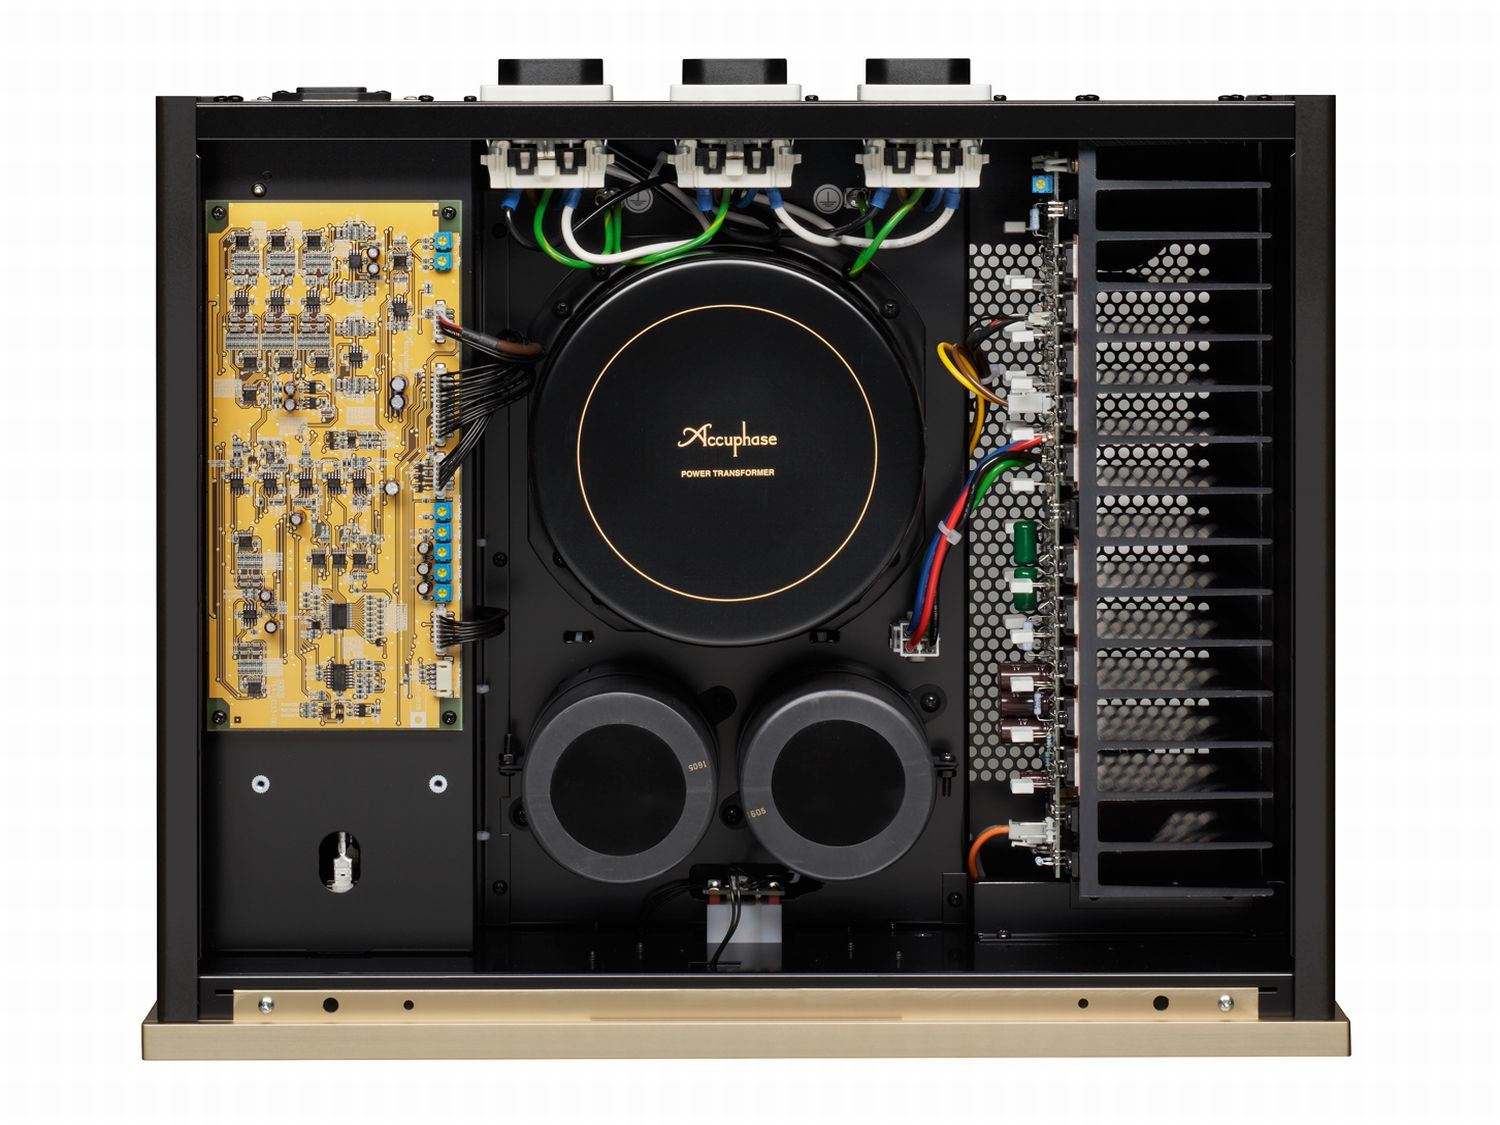 PS-530 Power Supply